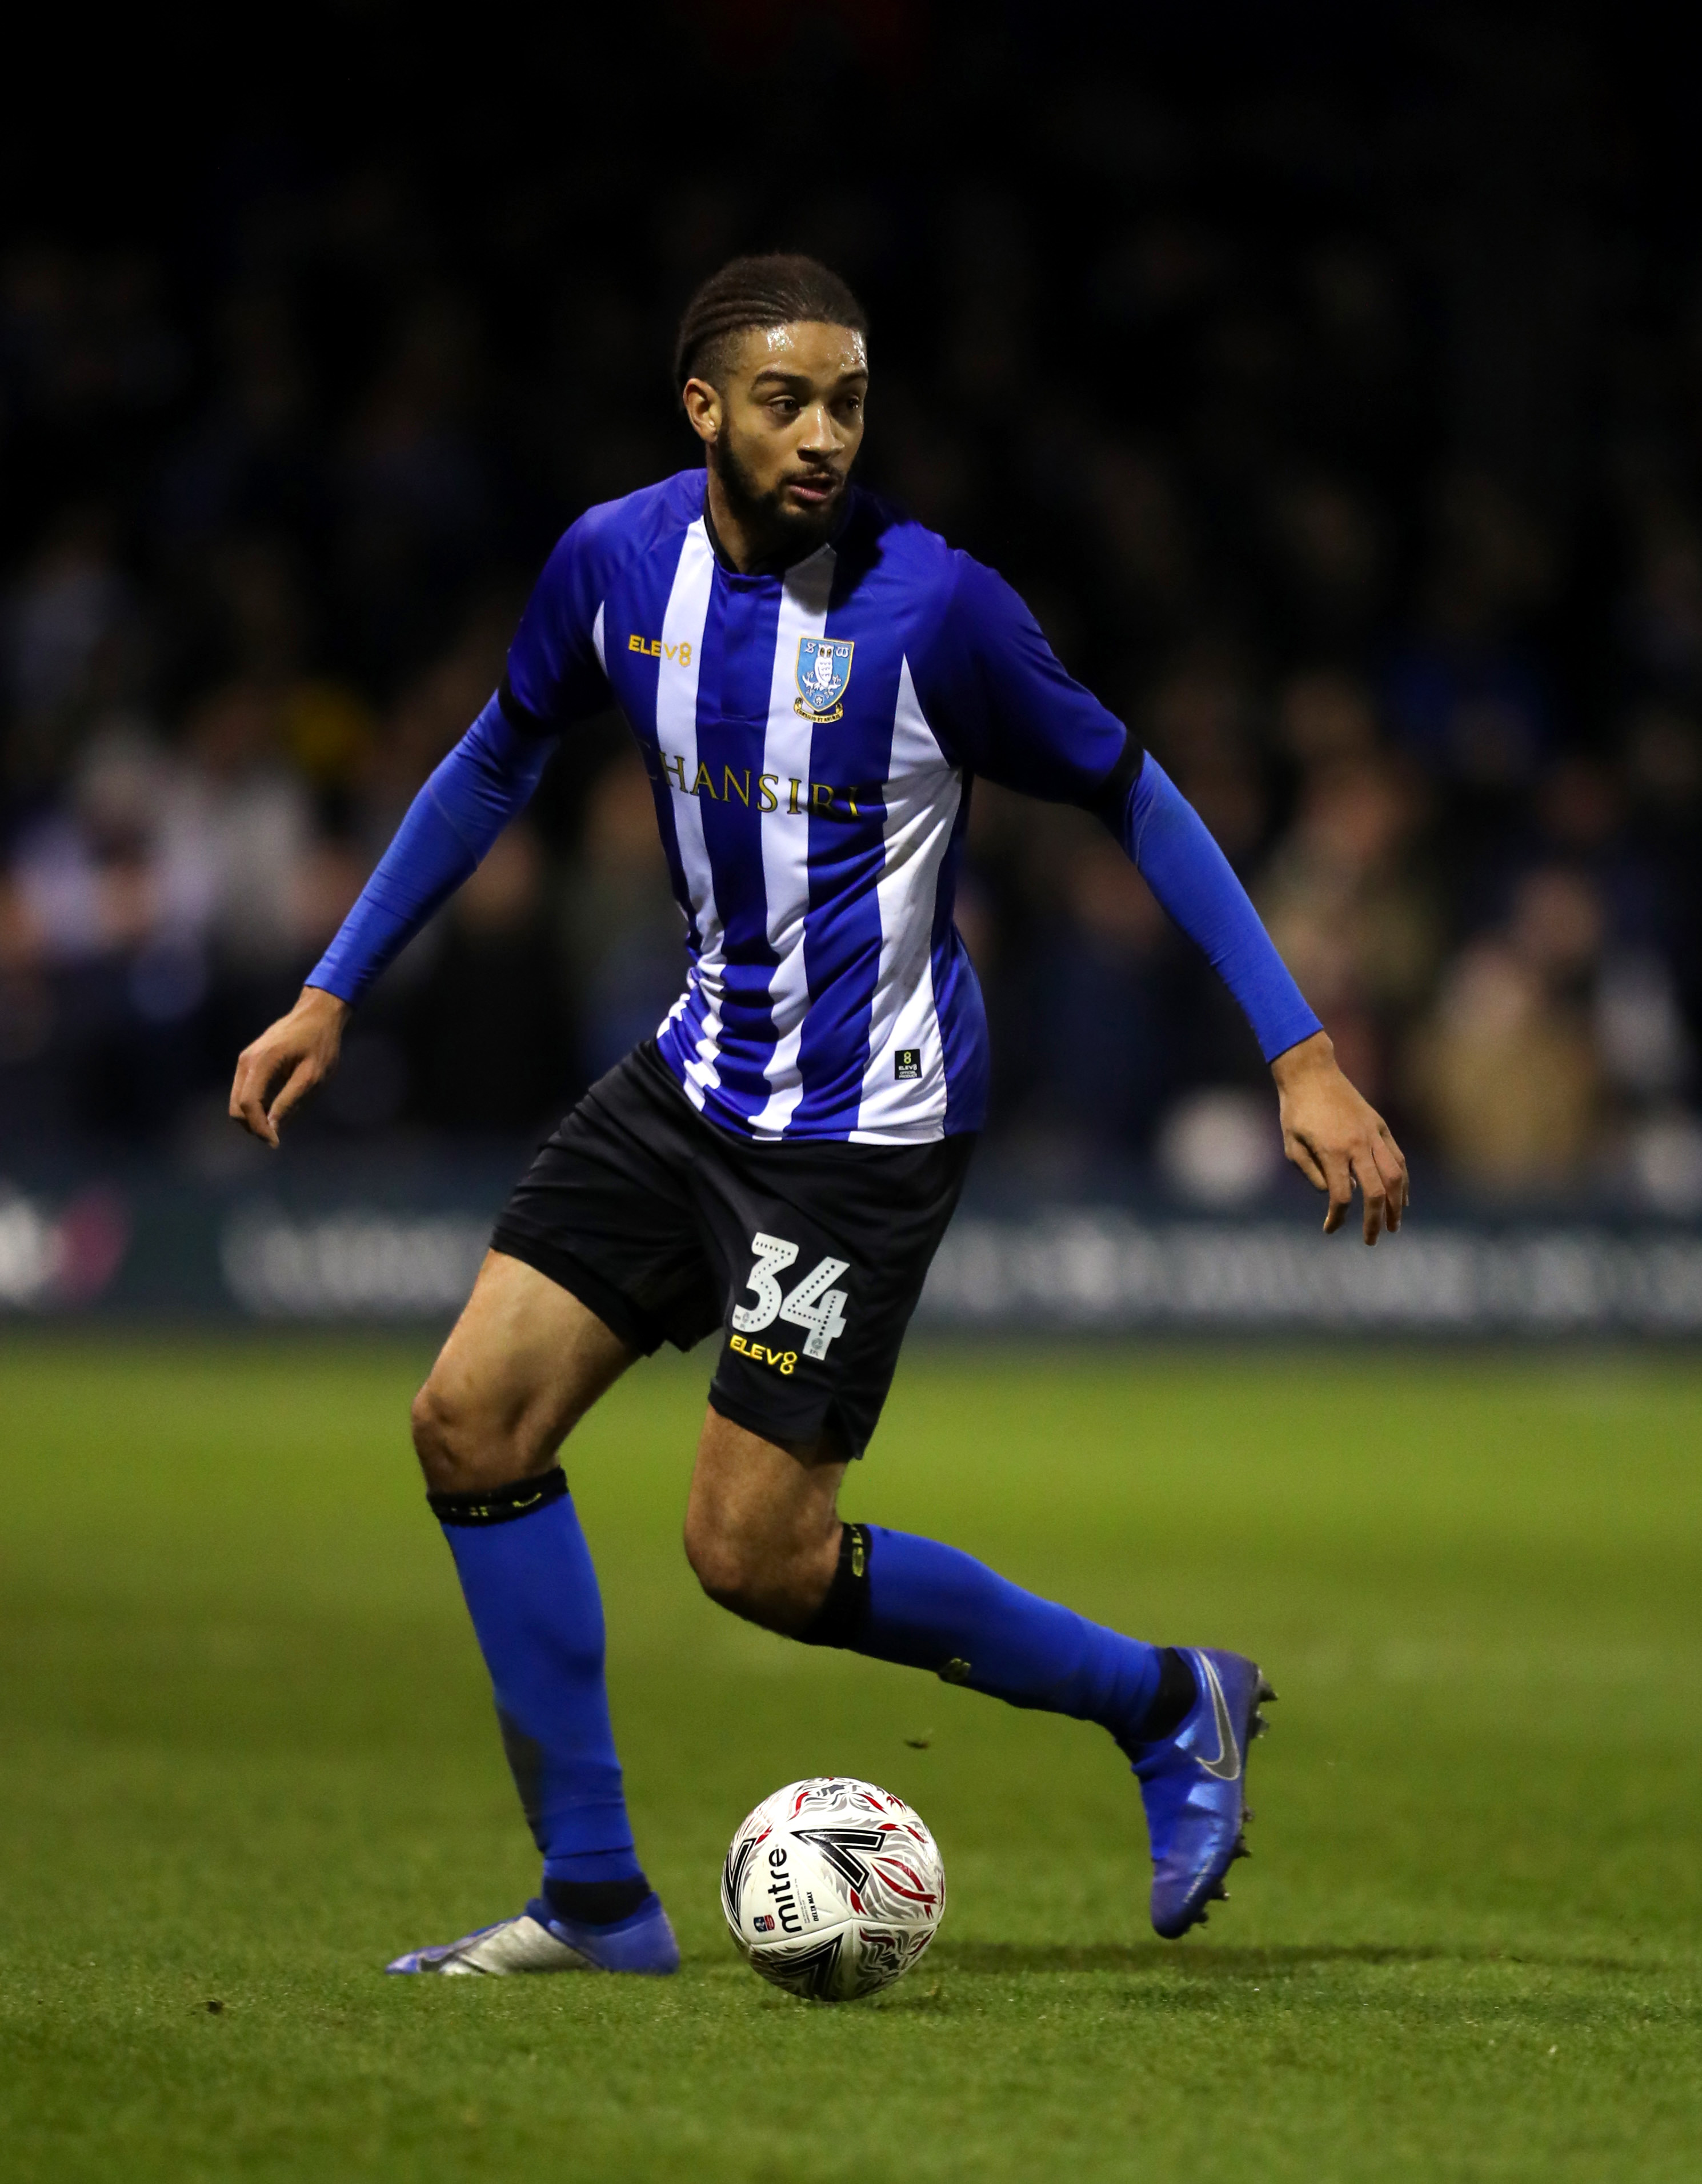 Sheffield Wednesday 'remain in dialogue' with Chelsea over Michael Hector — report